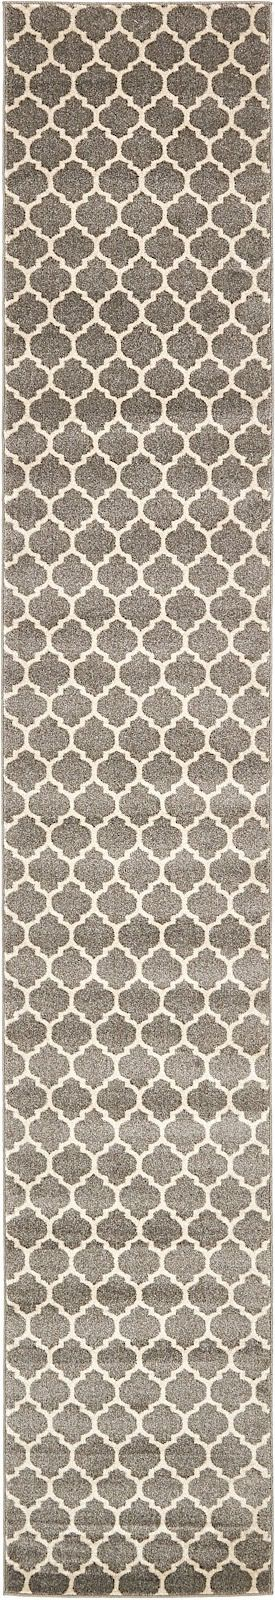 rugpal theodora contemporary area rug collection